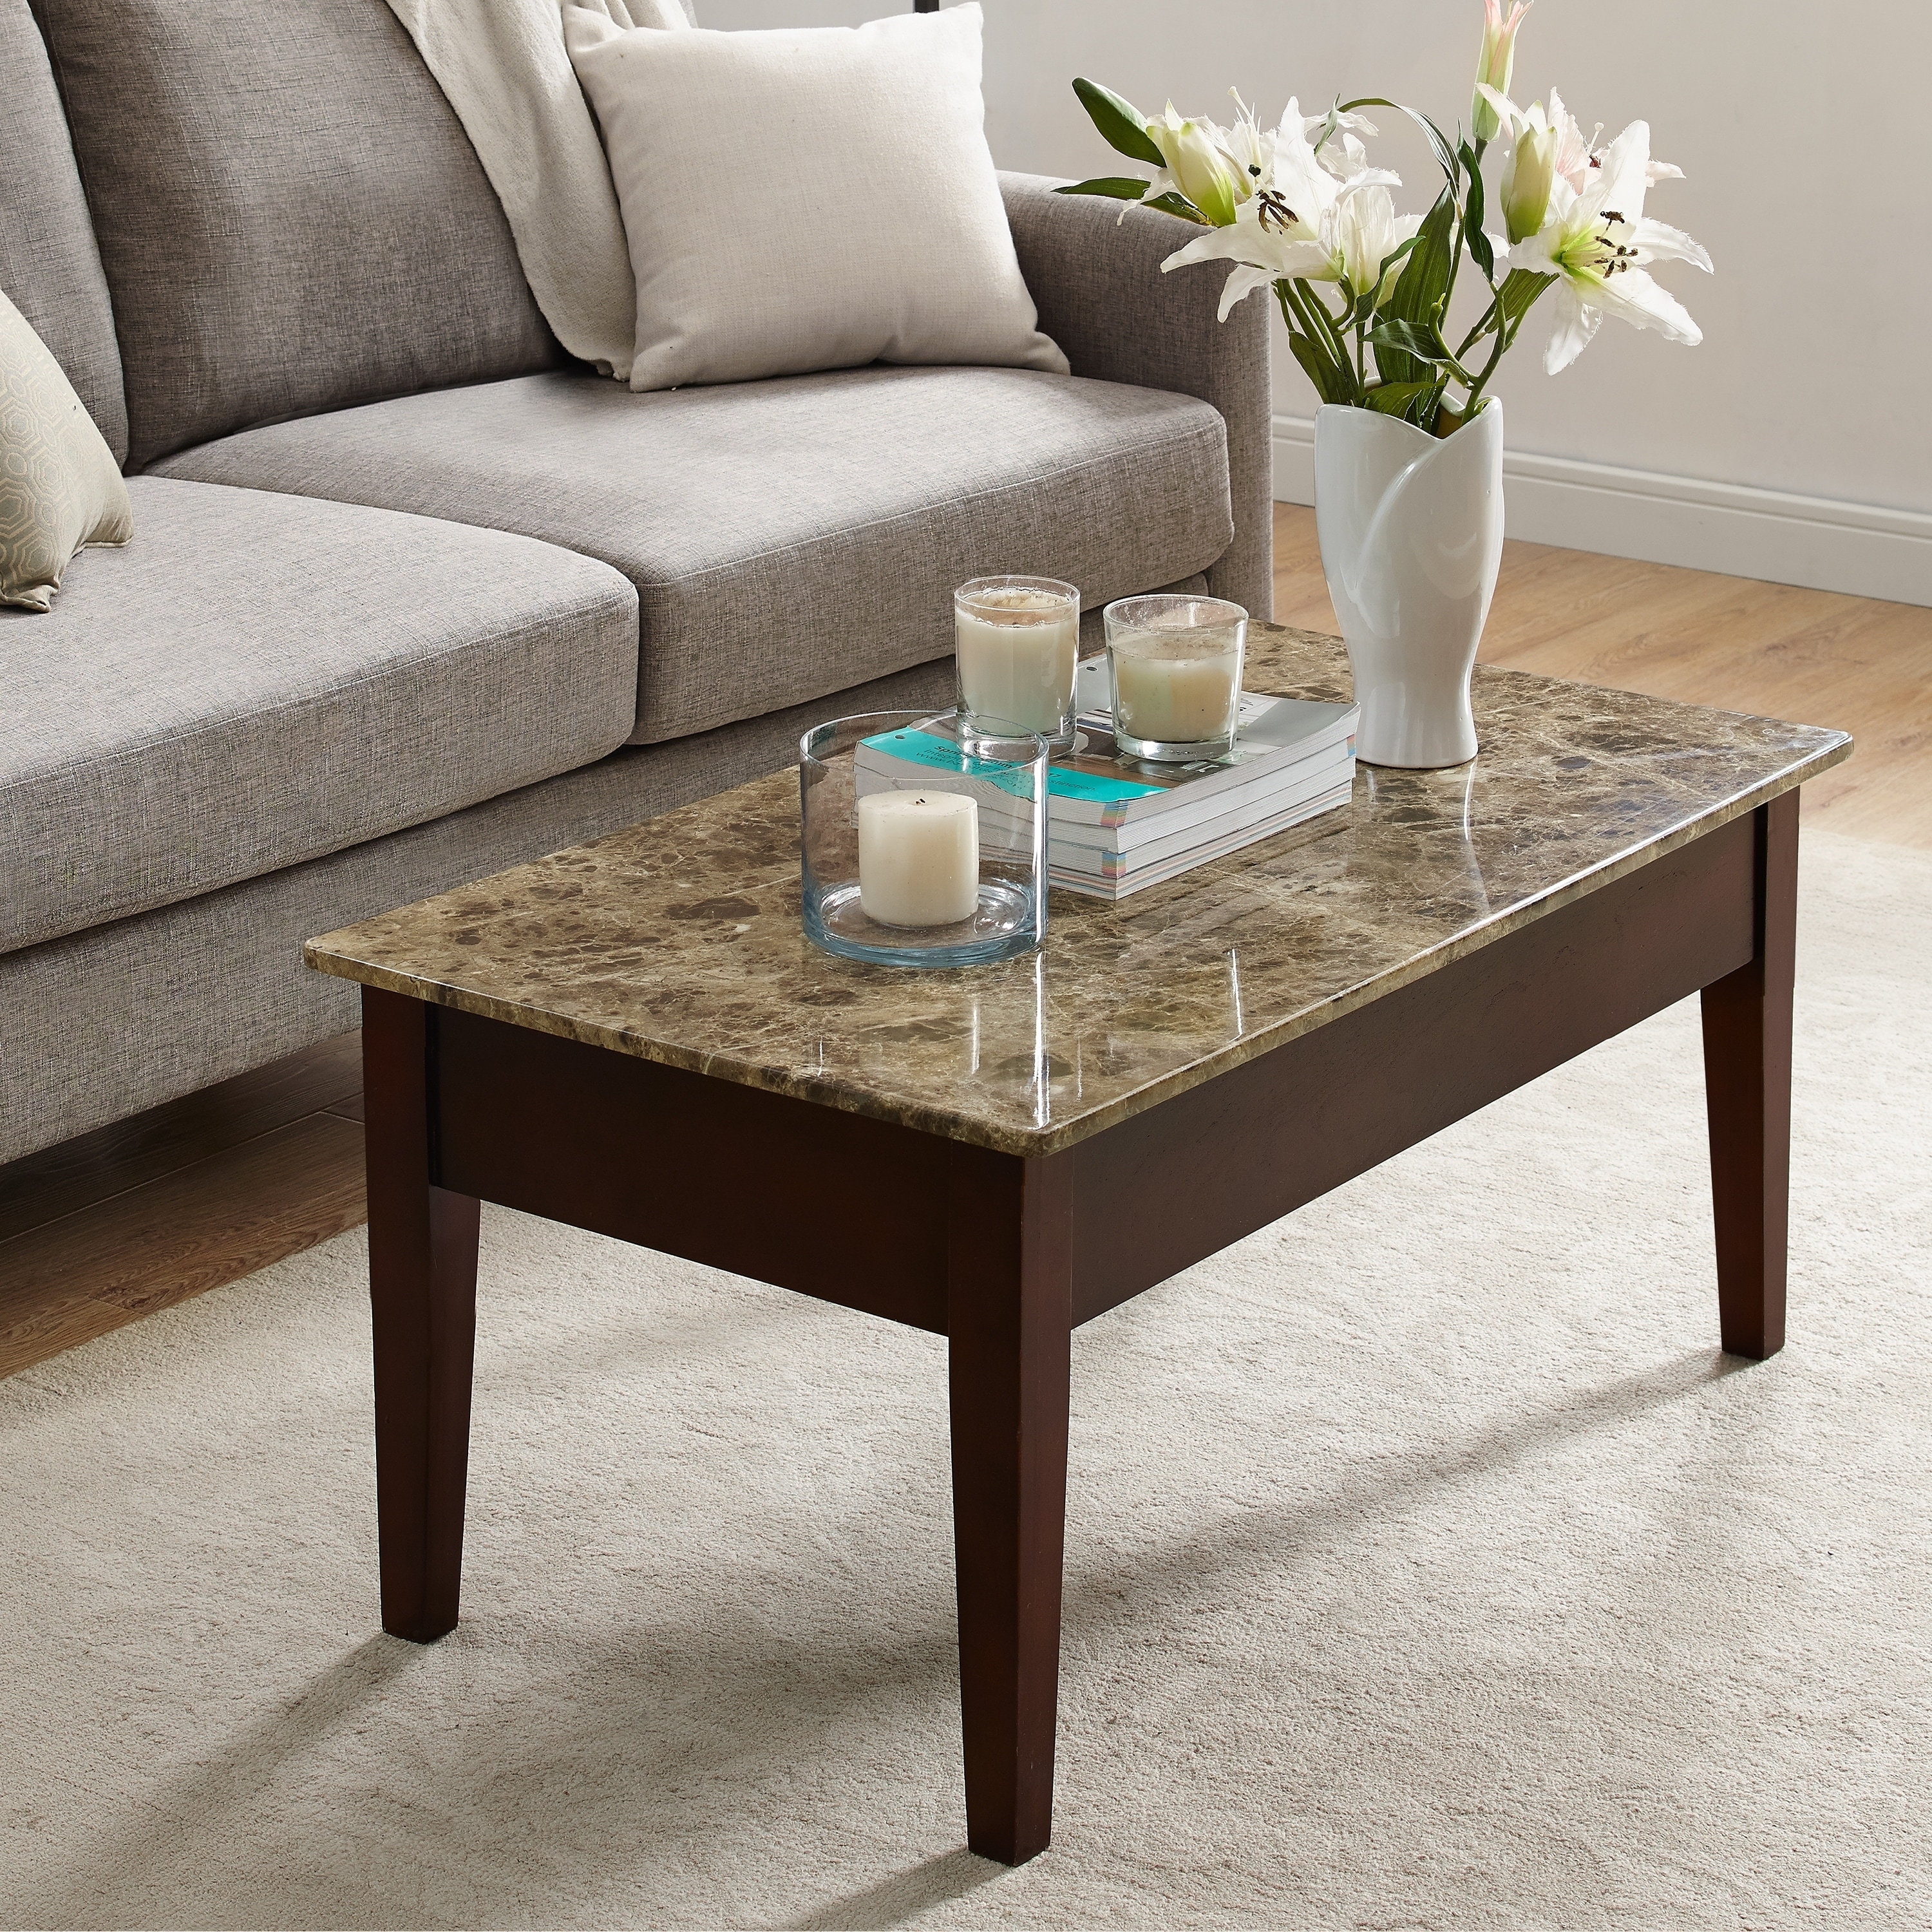 Shop Dorel Living Faux Marble Lift-Top Coffee Table